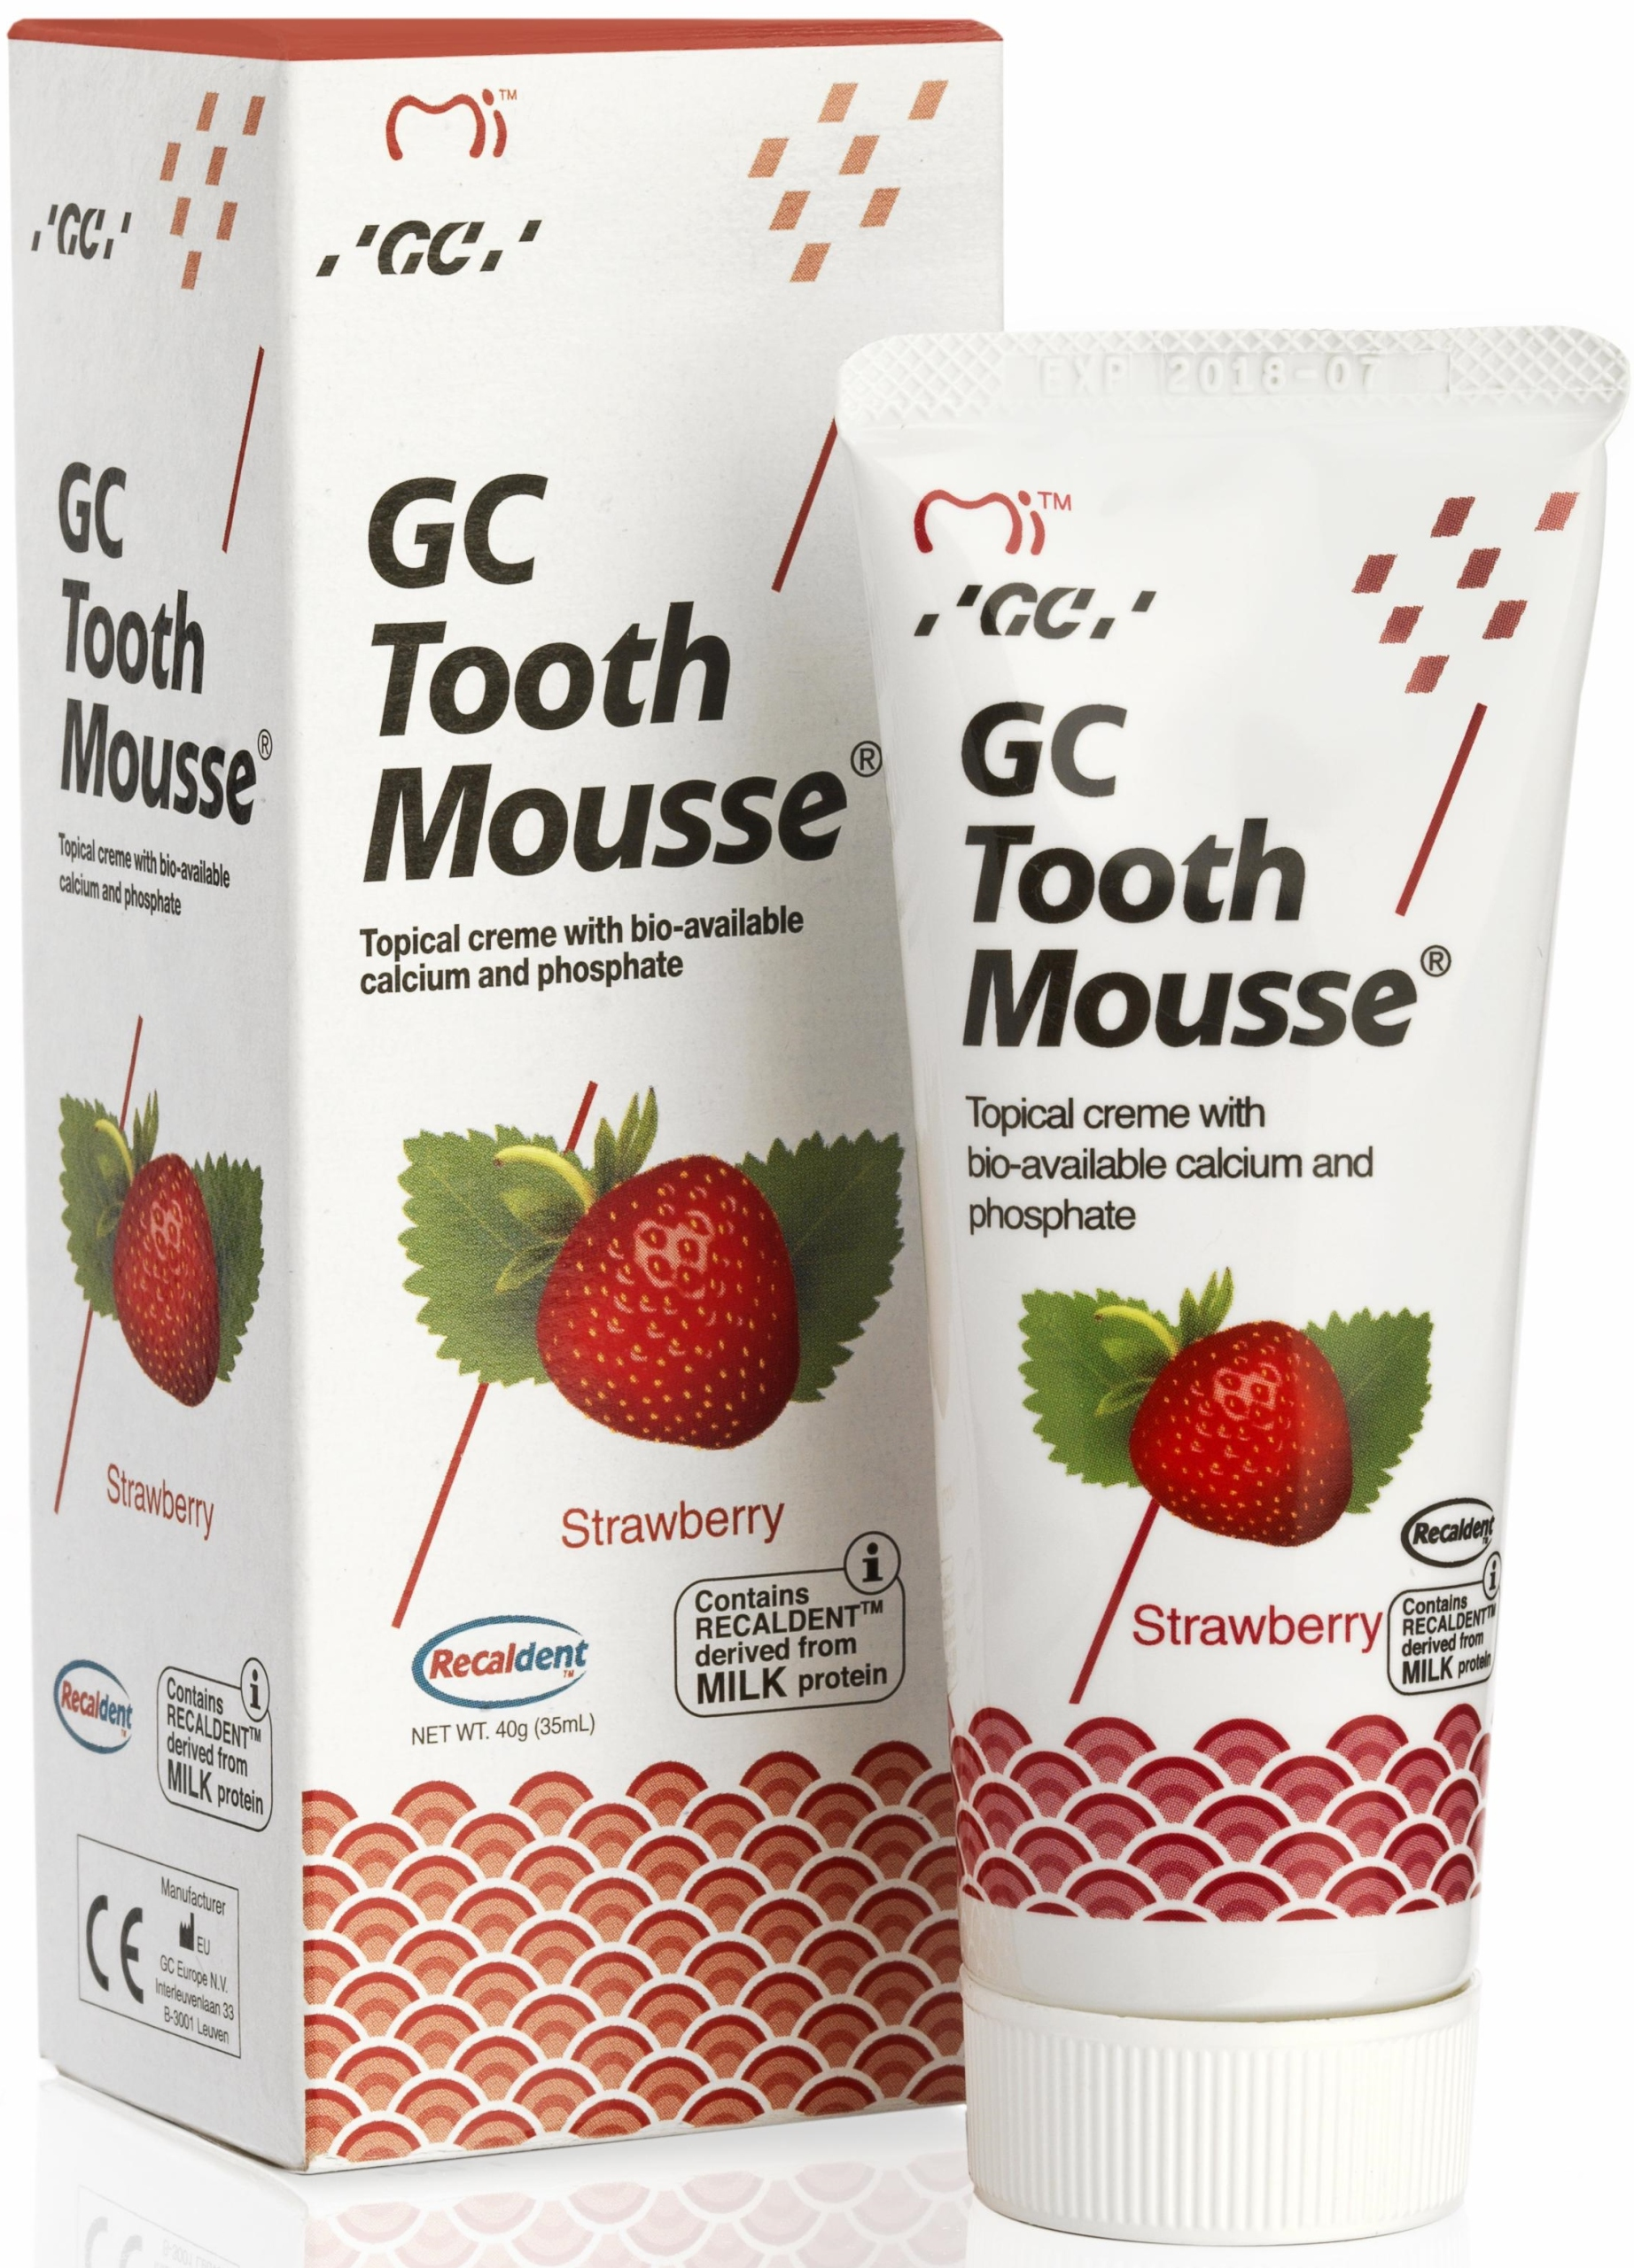 GC TOOTH MOUSSE PASTE 35мл STRAWBERRY WITHOUT FLUORIDE